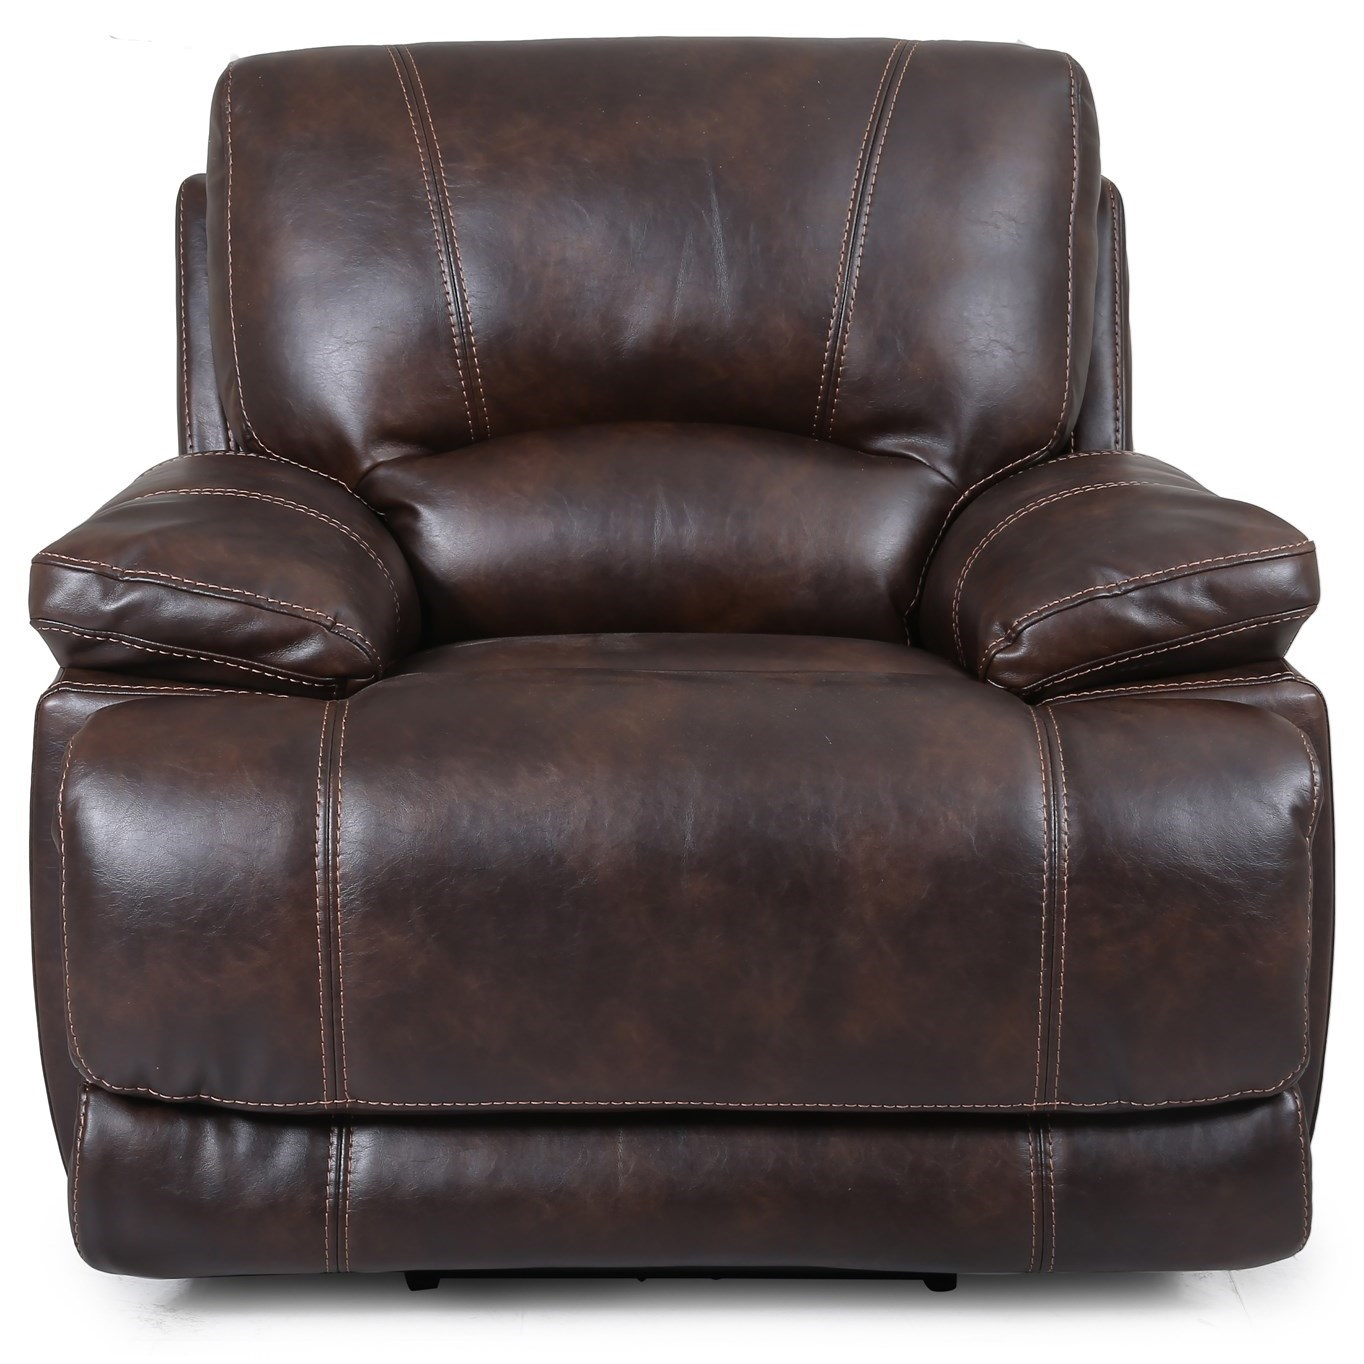 Cheers Sofa 5185 Power Recliner - Item Number: 5185-1 Shelter Brown